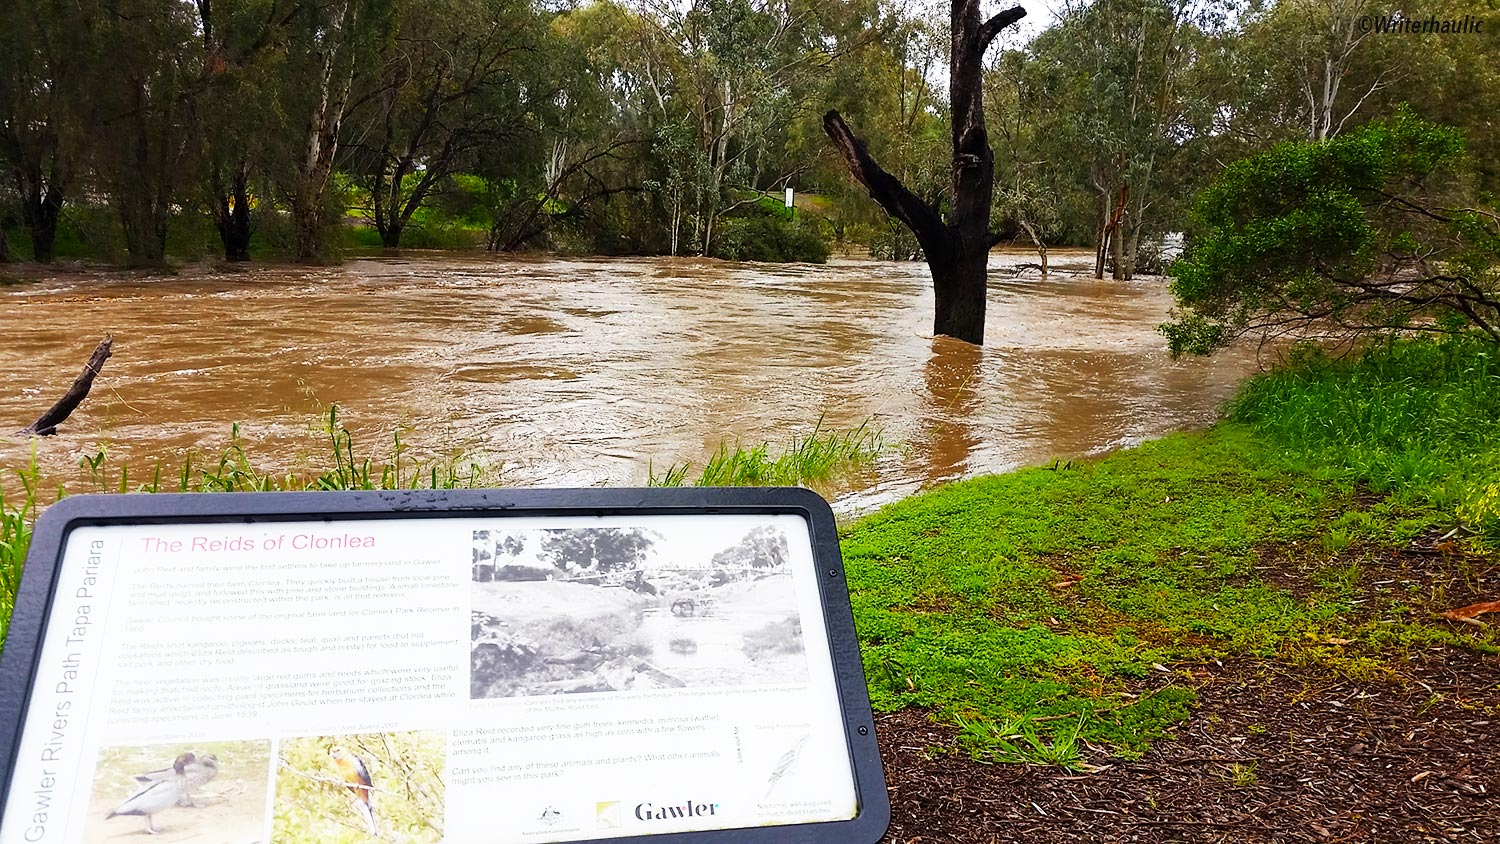 The water is rushing fiercely at the Murray Road ford near Clonlea Park:  Photo: Writerhaulic